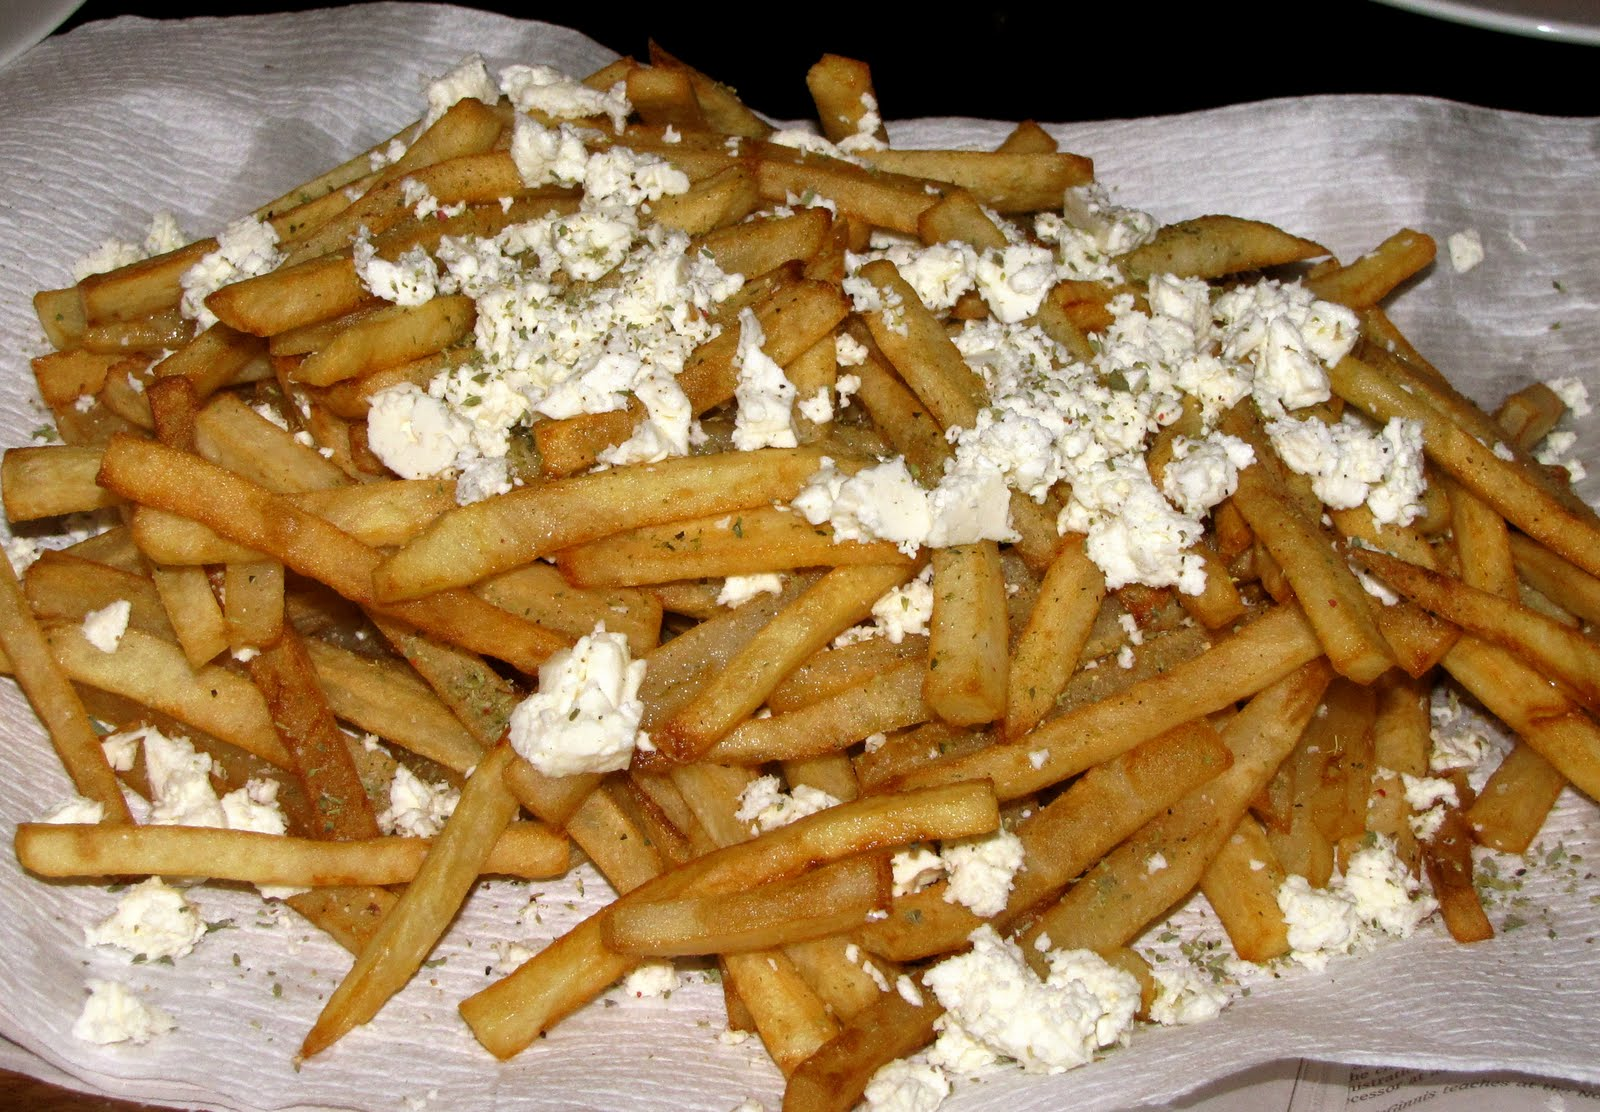 ... feta fries oven fries italian fries french fries feta fries feta fries